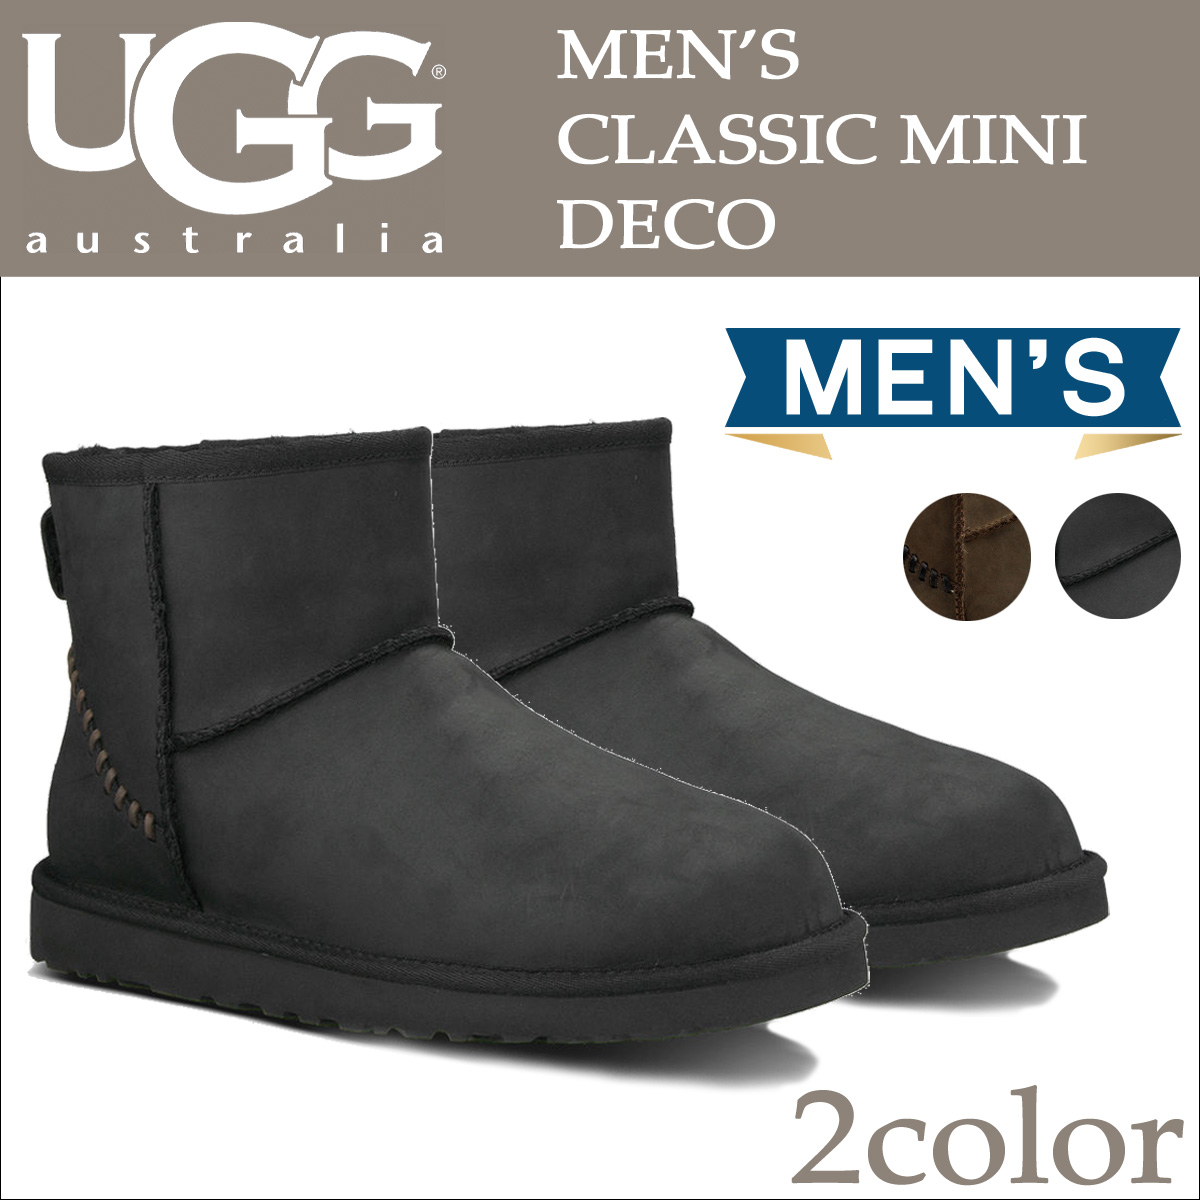 Sheepskin Boots Classic mini, UGG UGG men's MENS CLASSIC MINI DECO Deco 1003945 2 color [9/30 Add in stock]